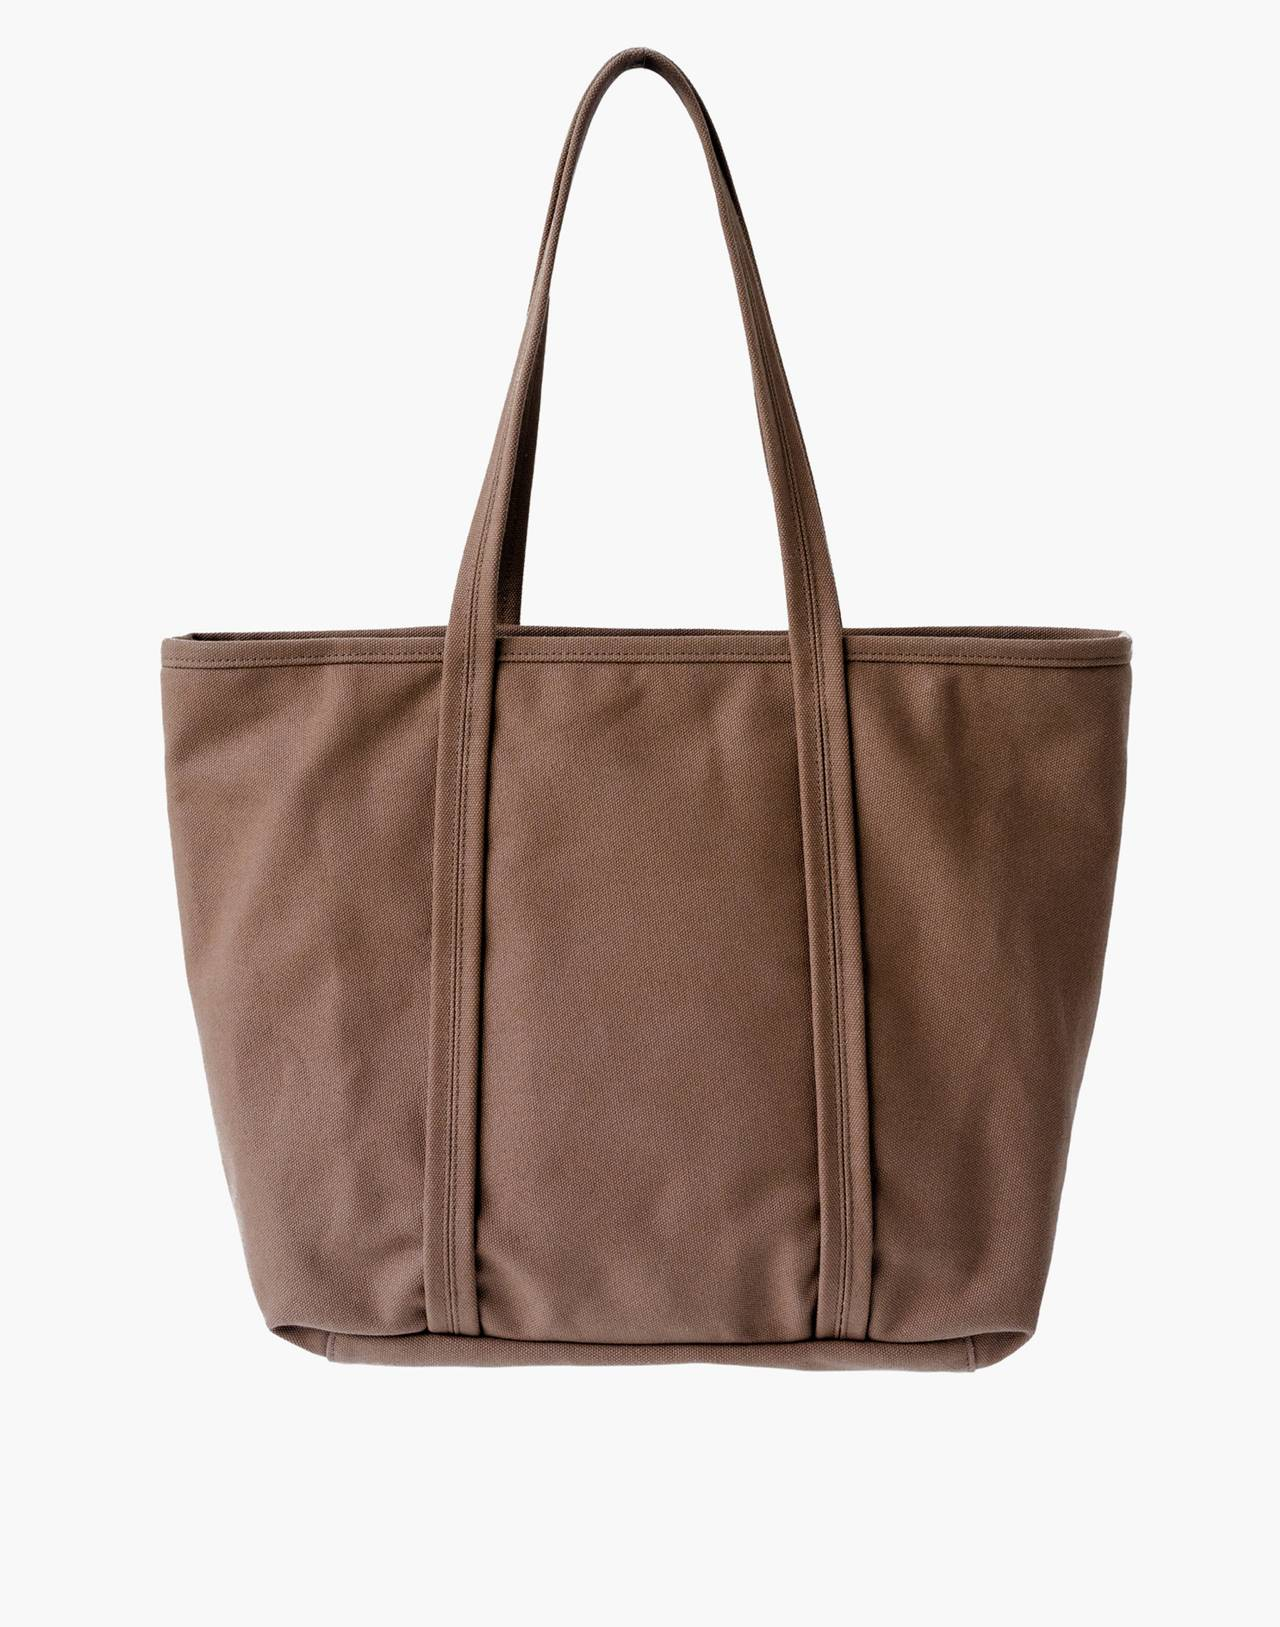 MAKR Canvas Day Tote Bag in brown image 1